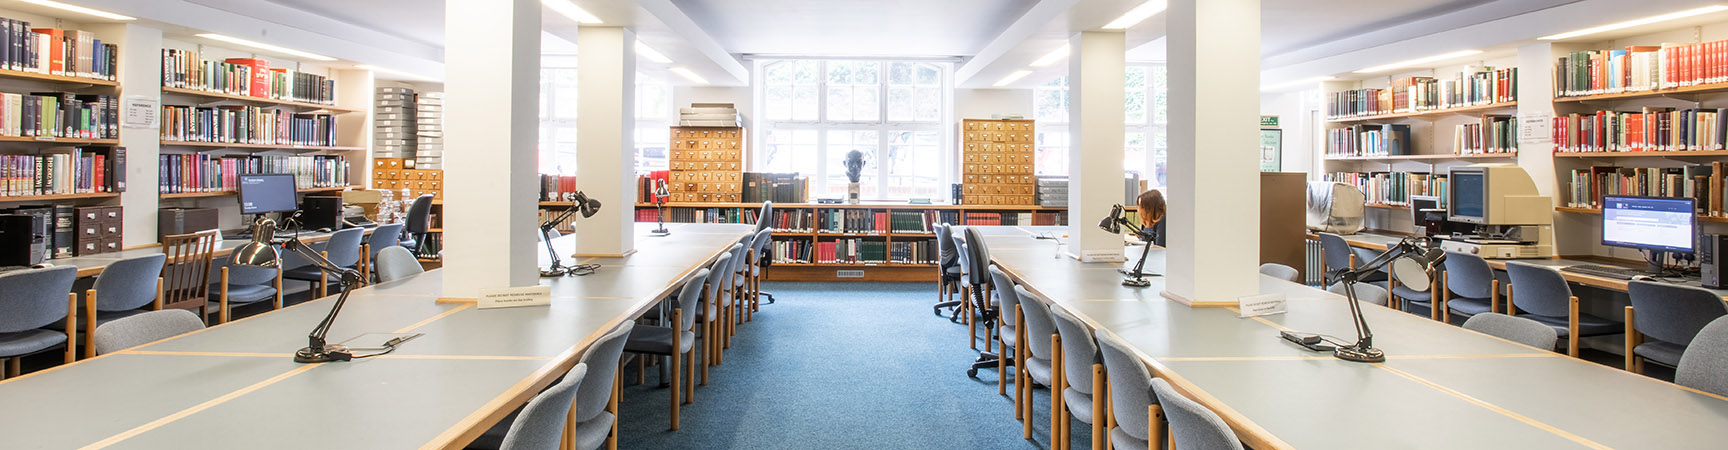 Two rows of desks with bookshelves on each side